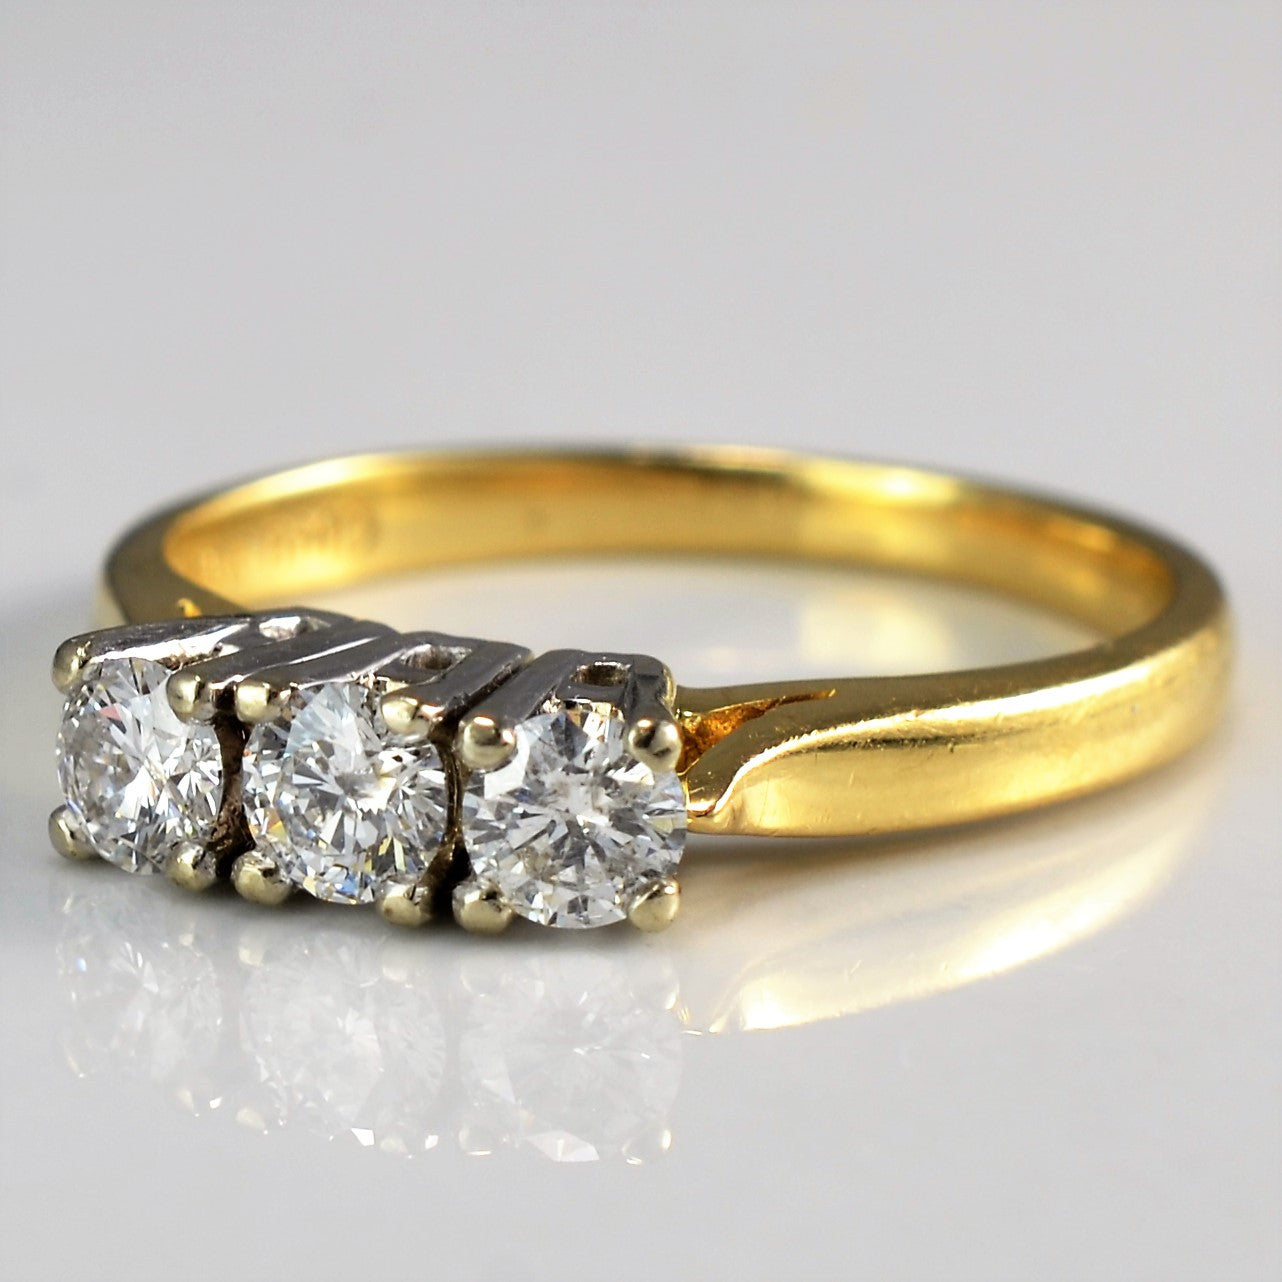 Prong Set Three Stone Diamond Ring | 0.45 ctw, SZ 6.5 |